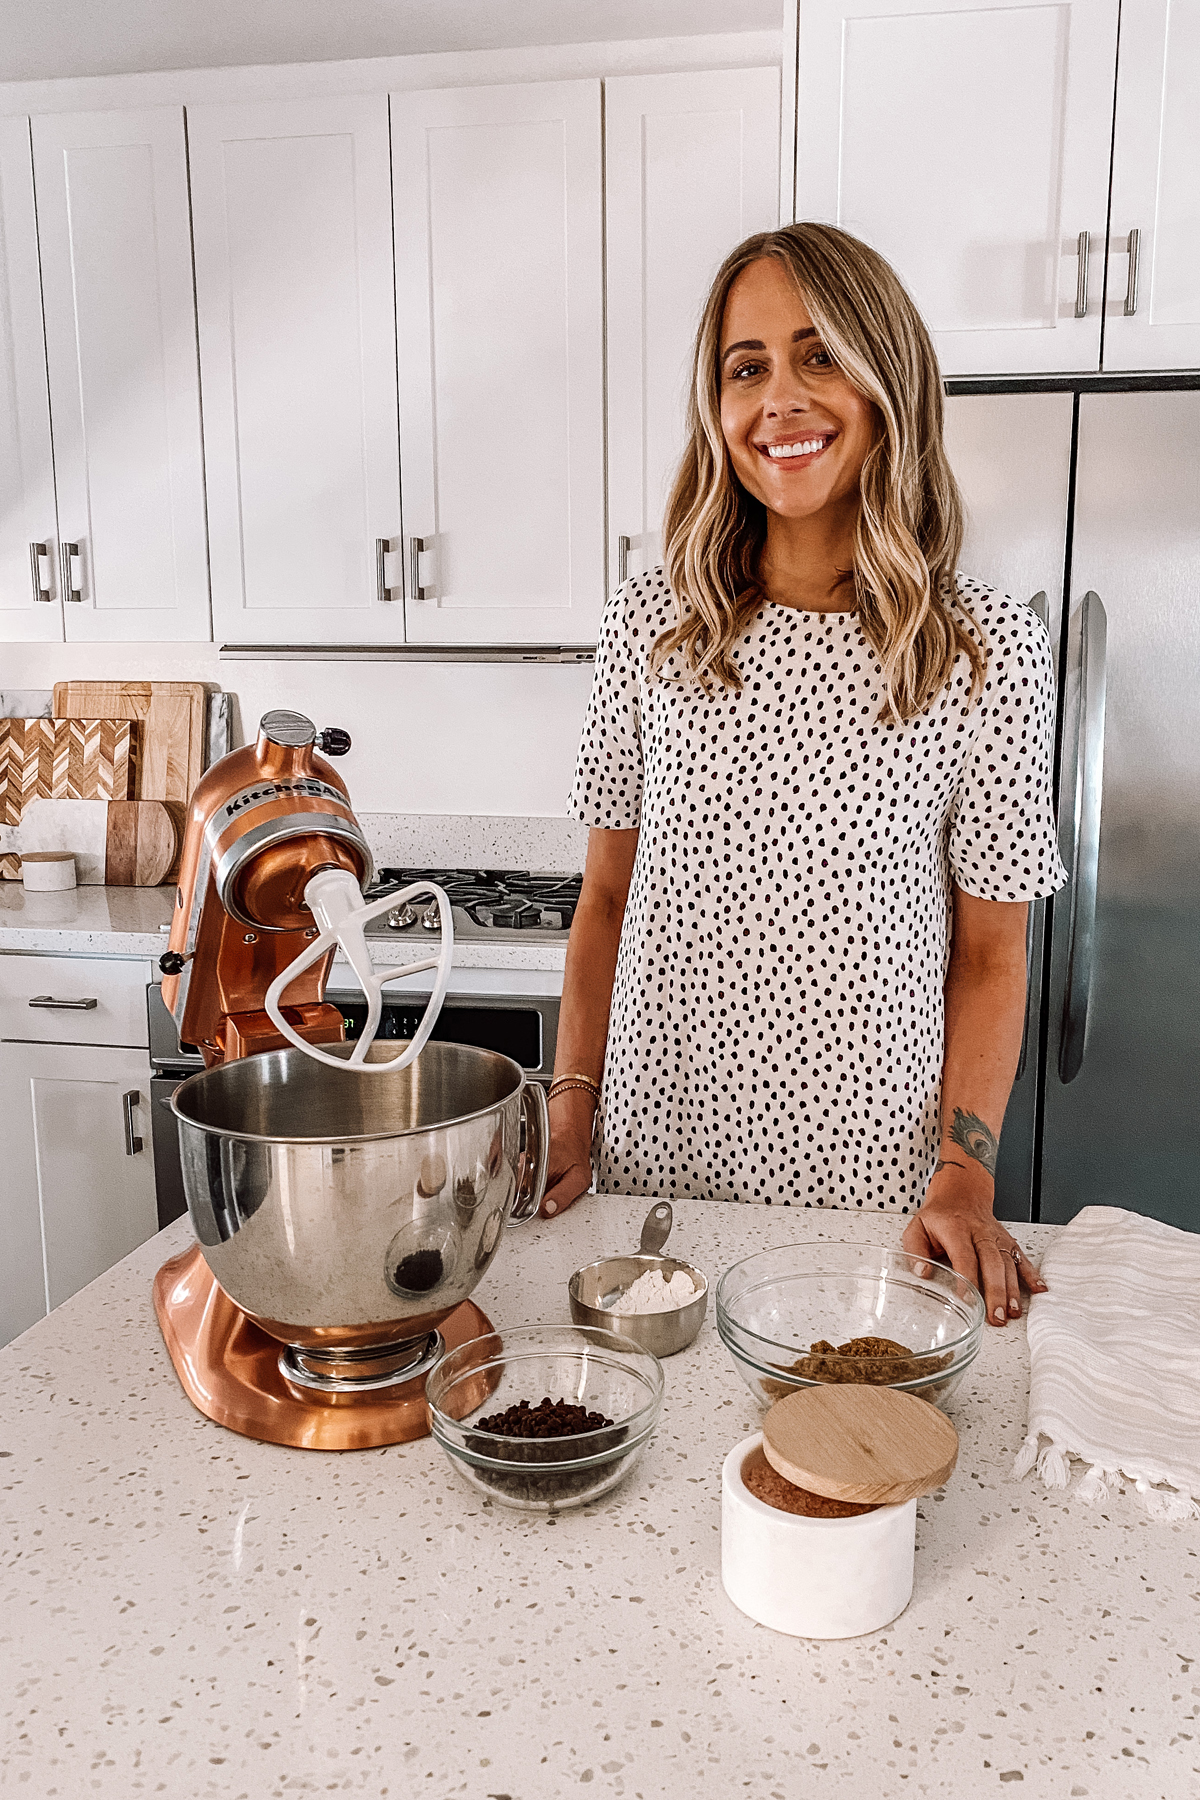 Fashion Jackson KitchenAid Copper Mixer Chocolate Chip Cookie Recipe